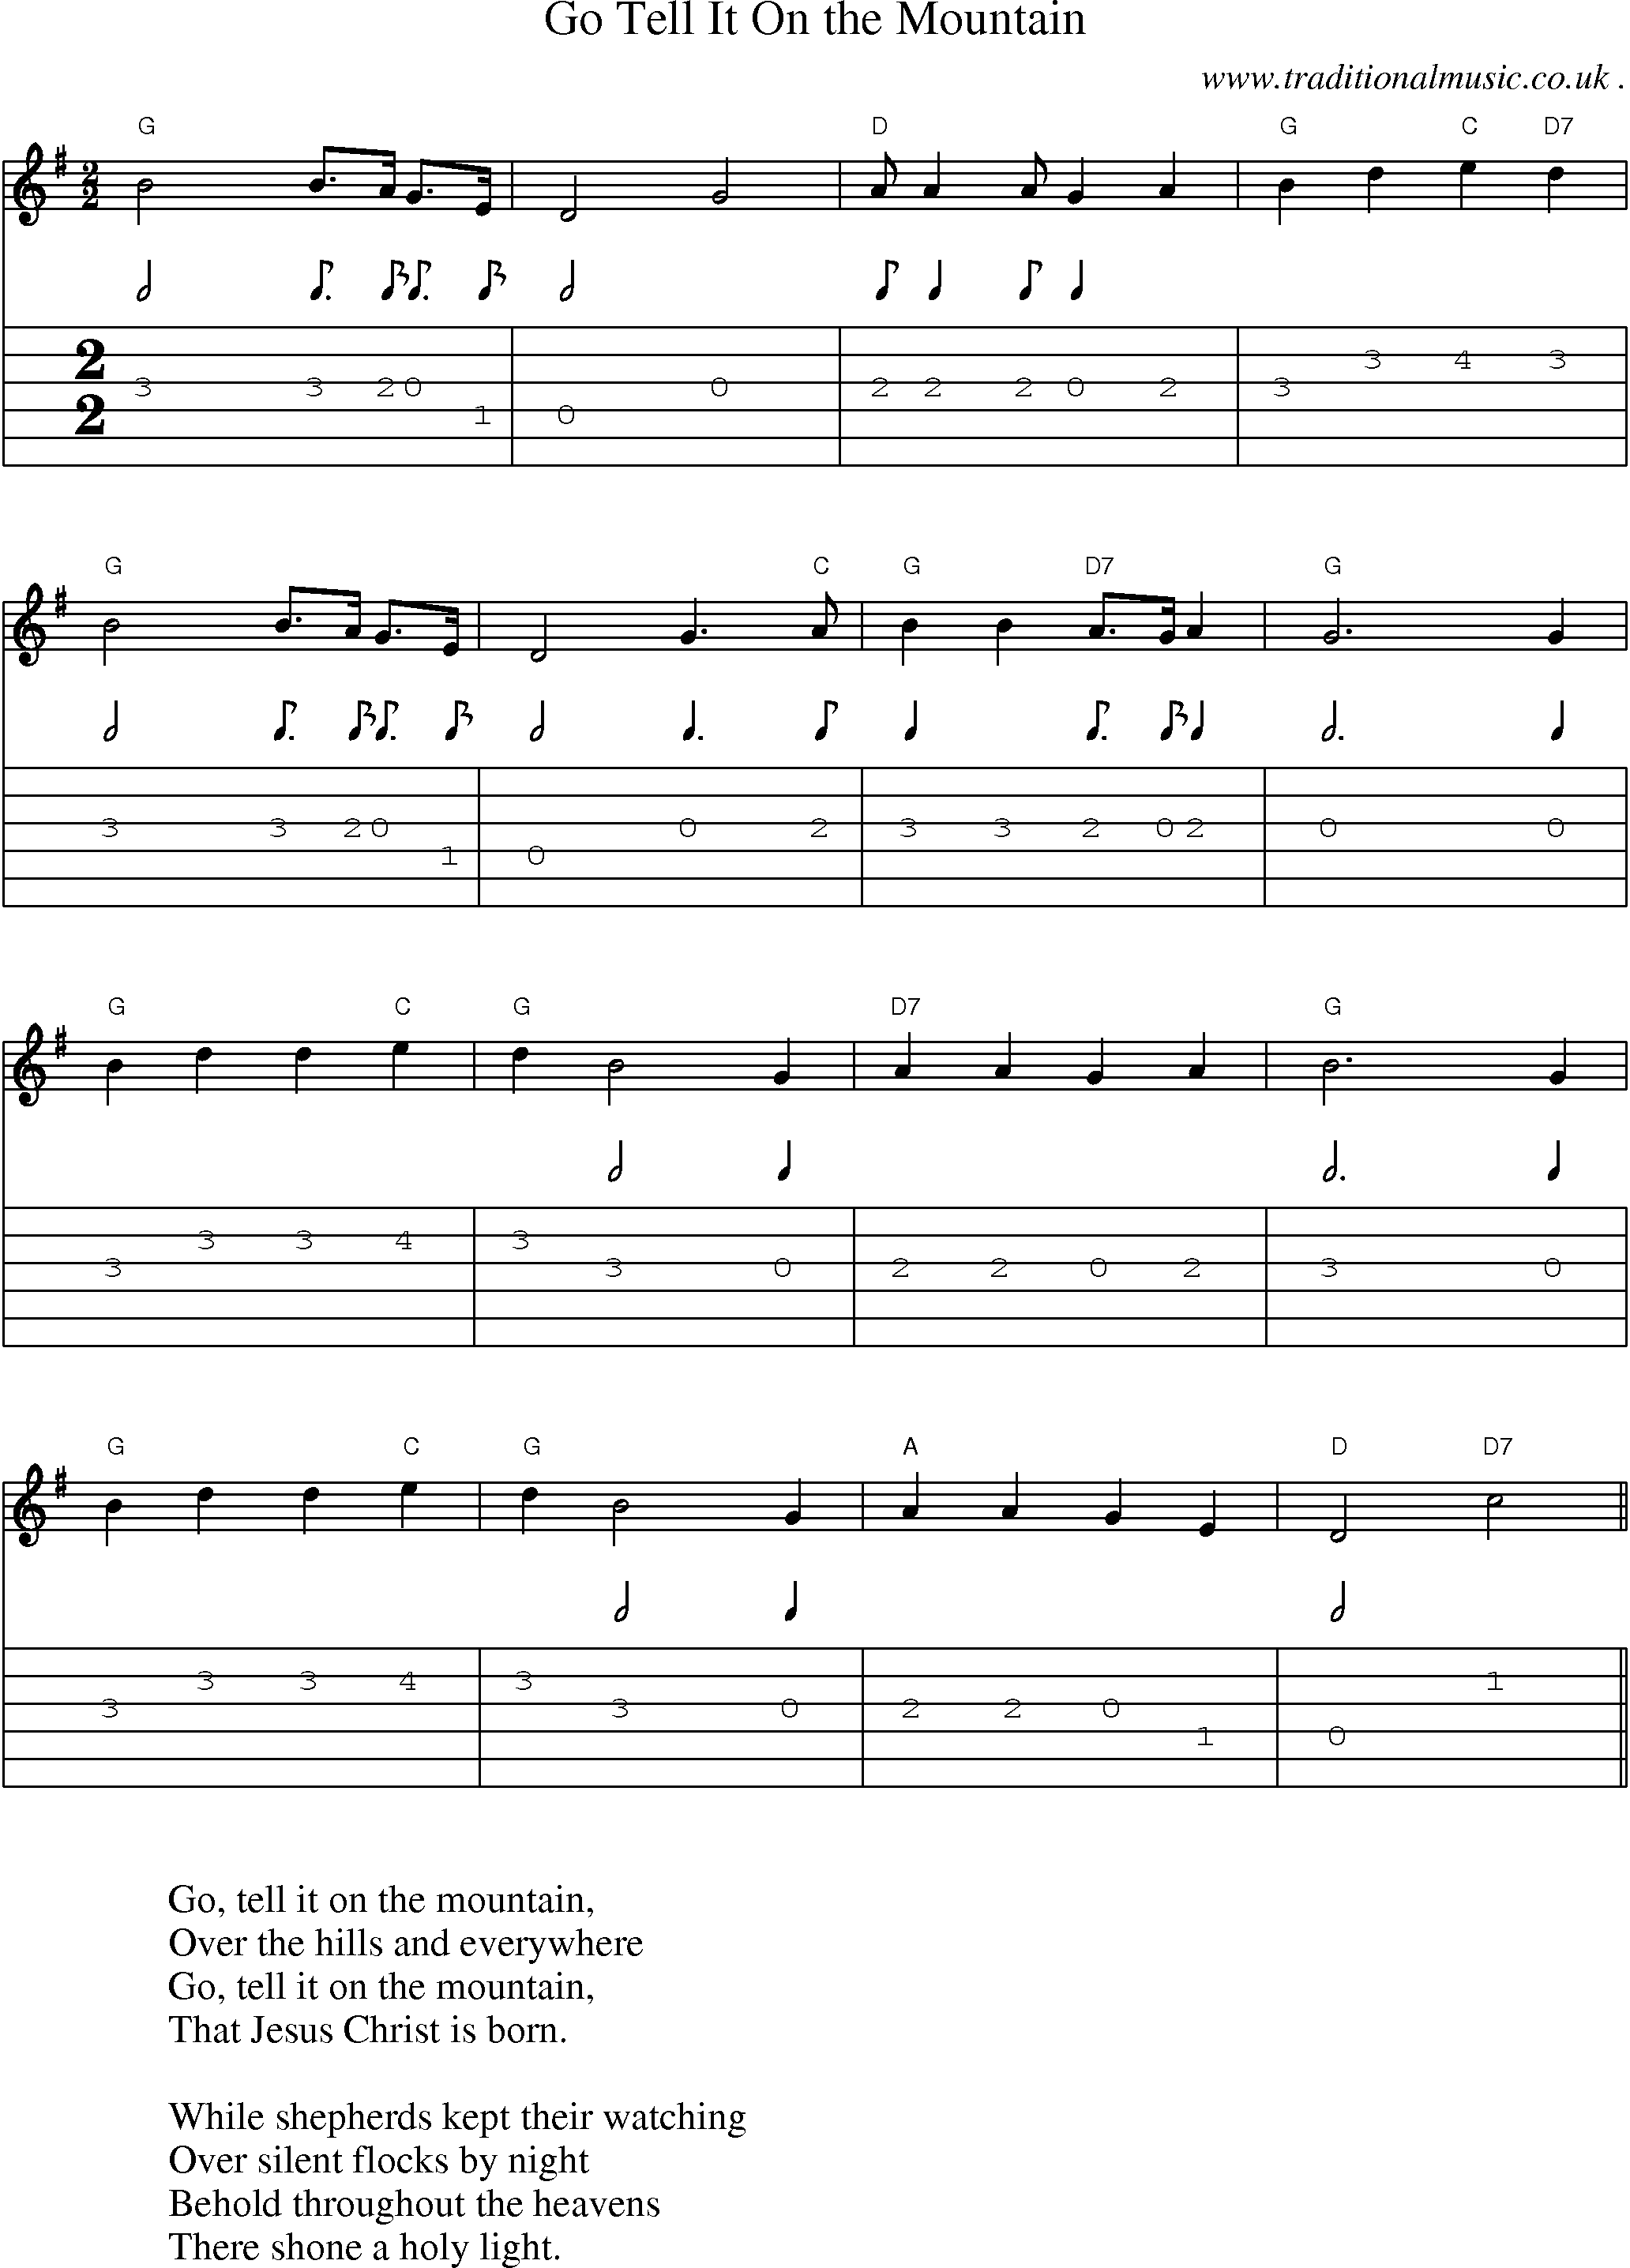 Music Score and Guitar Tabs for Go Tell It On the Mountain ...